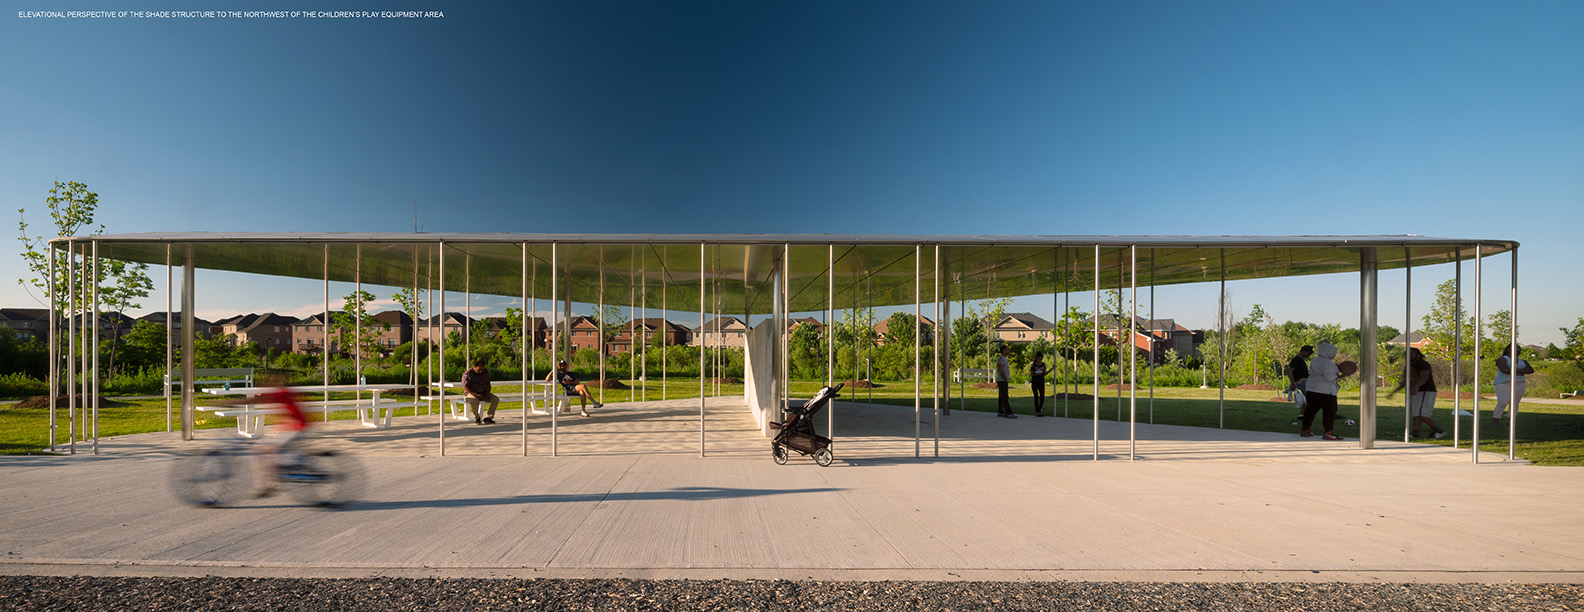 ELEVATIONAL PERSPECTIVE OF THE SHADE STRUCTURE TO THE NORTHWEST OF THE CHILDREN'S PLAY EQUIPMENT AREA Nic Lehoux